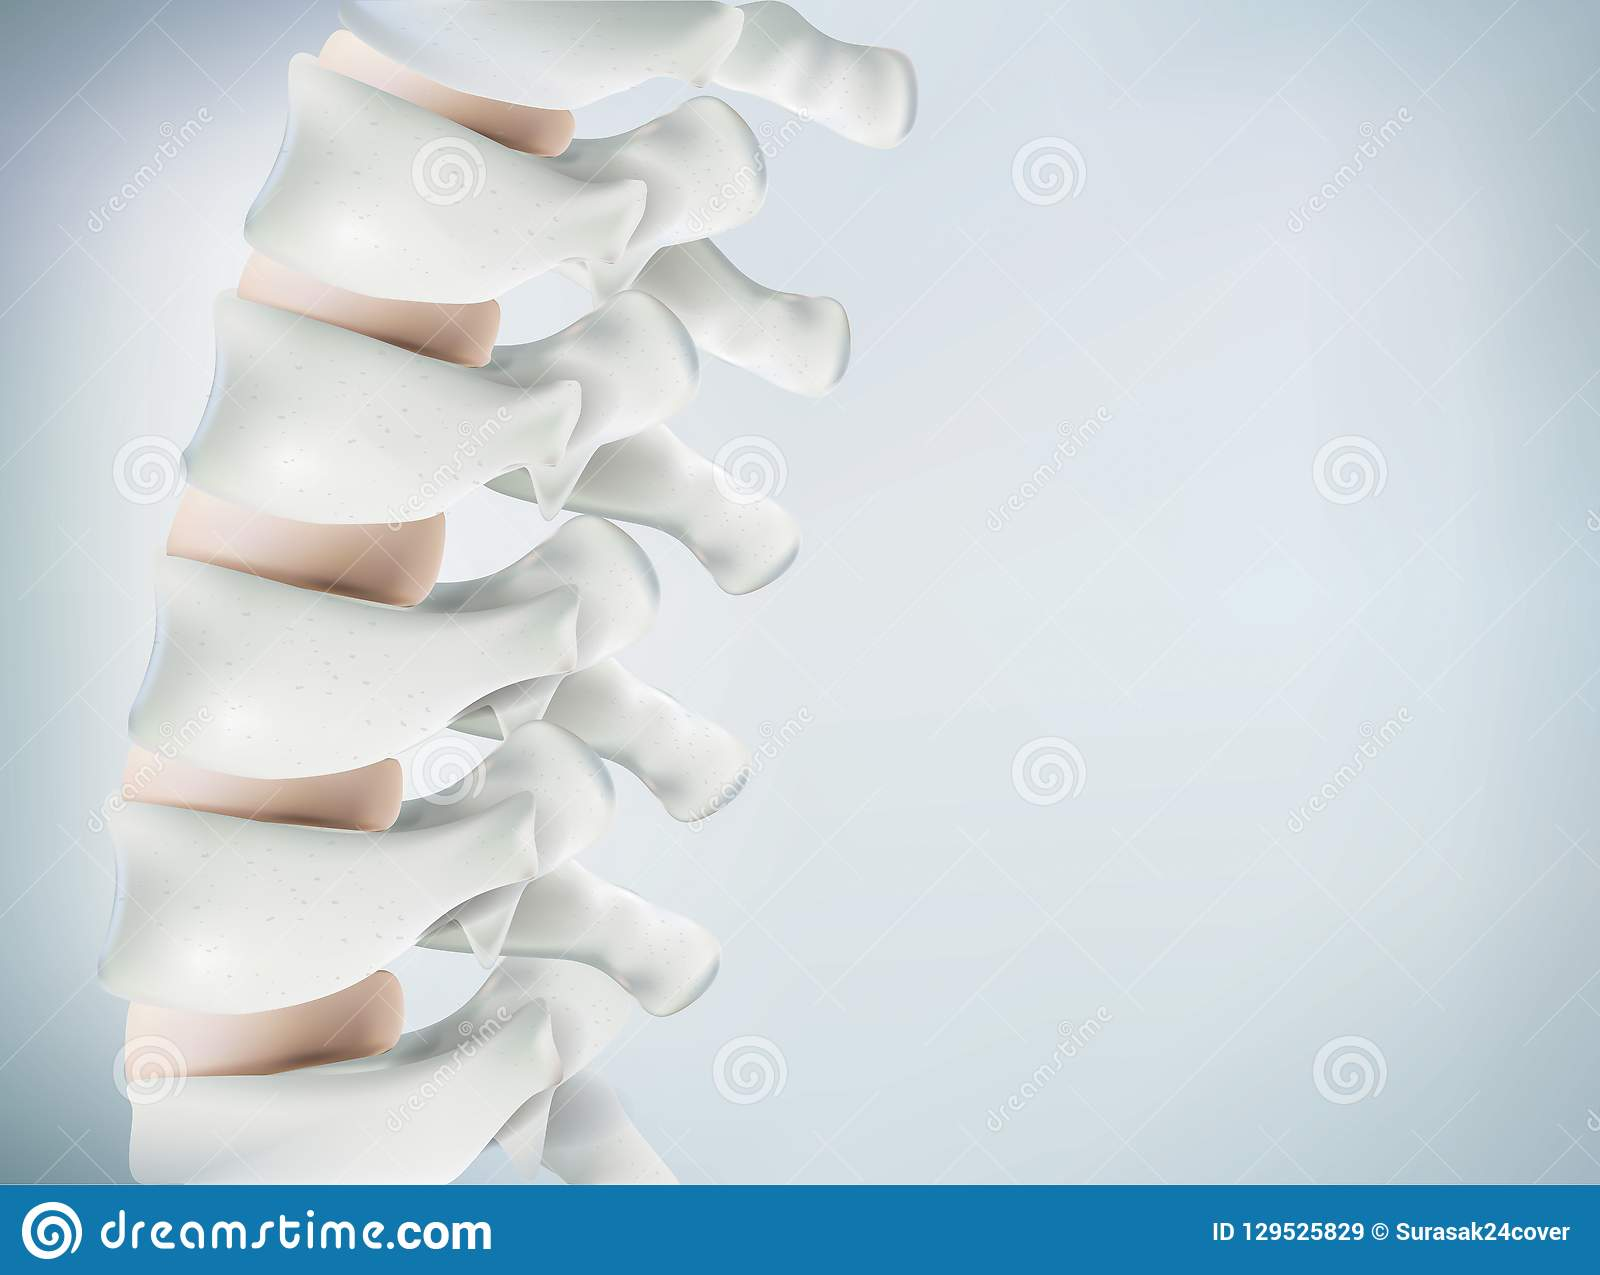 The human spine image is realistic. Shows the medical accuracy of human skeleton and 3D rendering.